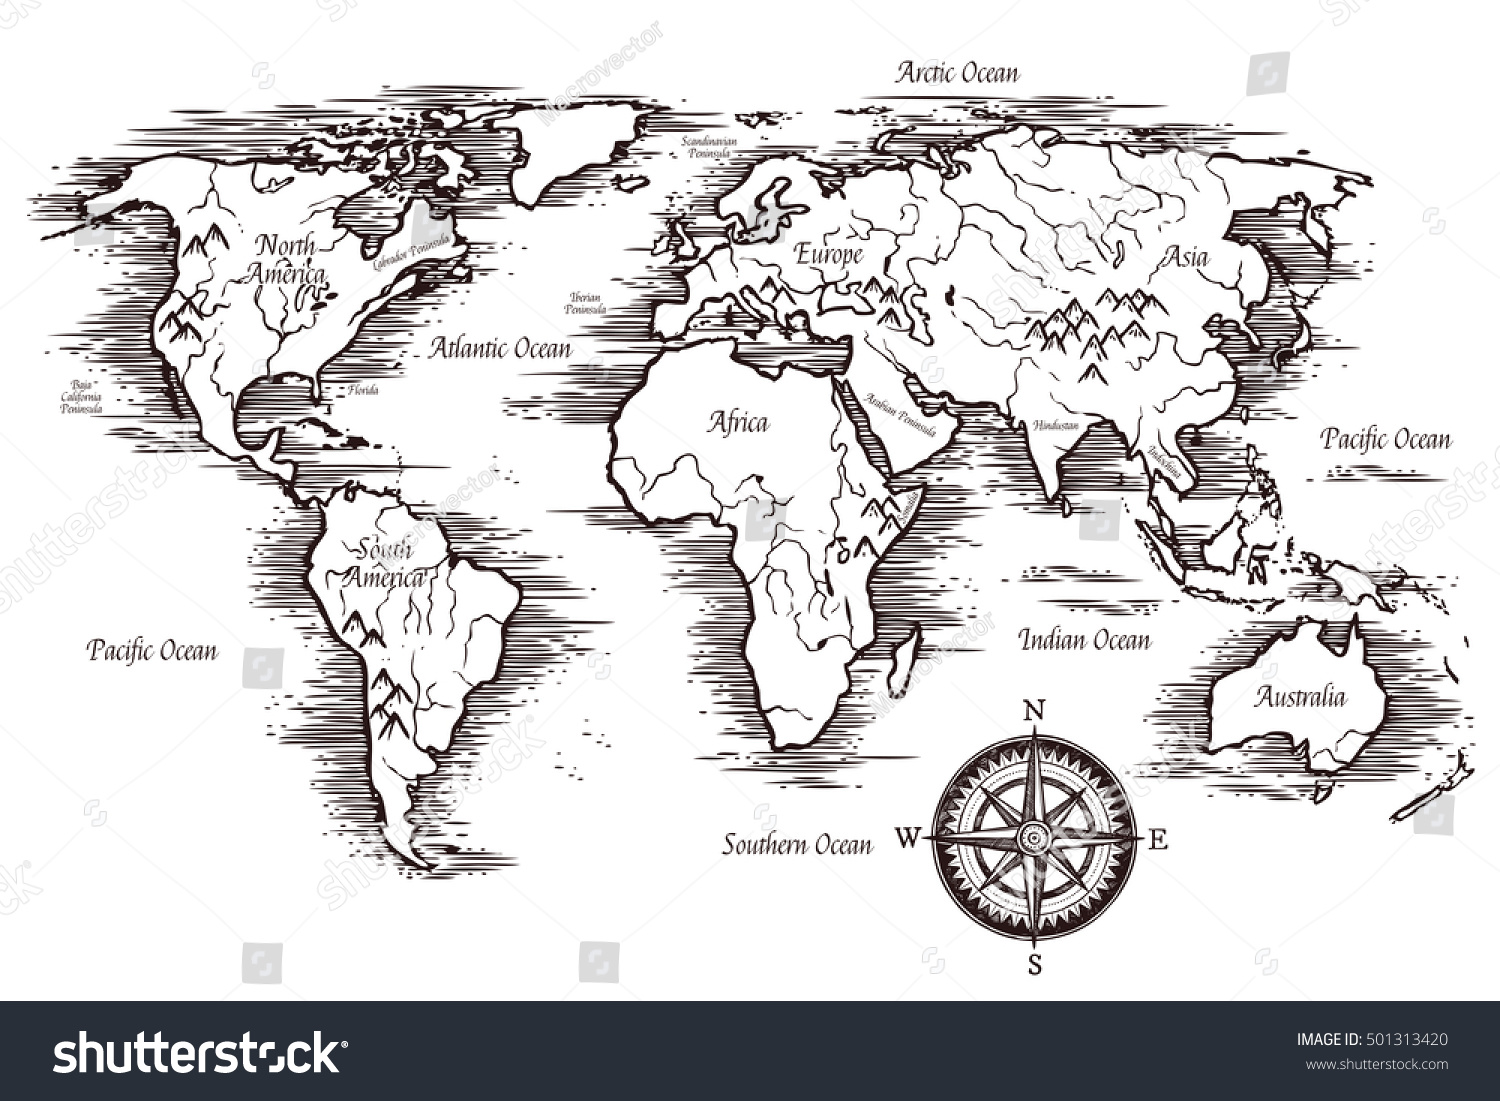 Sketch world map template black white stock vector 501313420 sketch world map template in black and white colors with titles of continents and oceans vector gumiabroncs Gallery